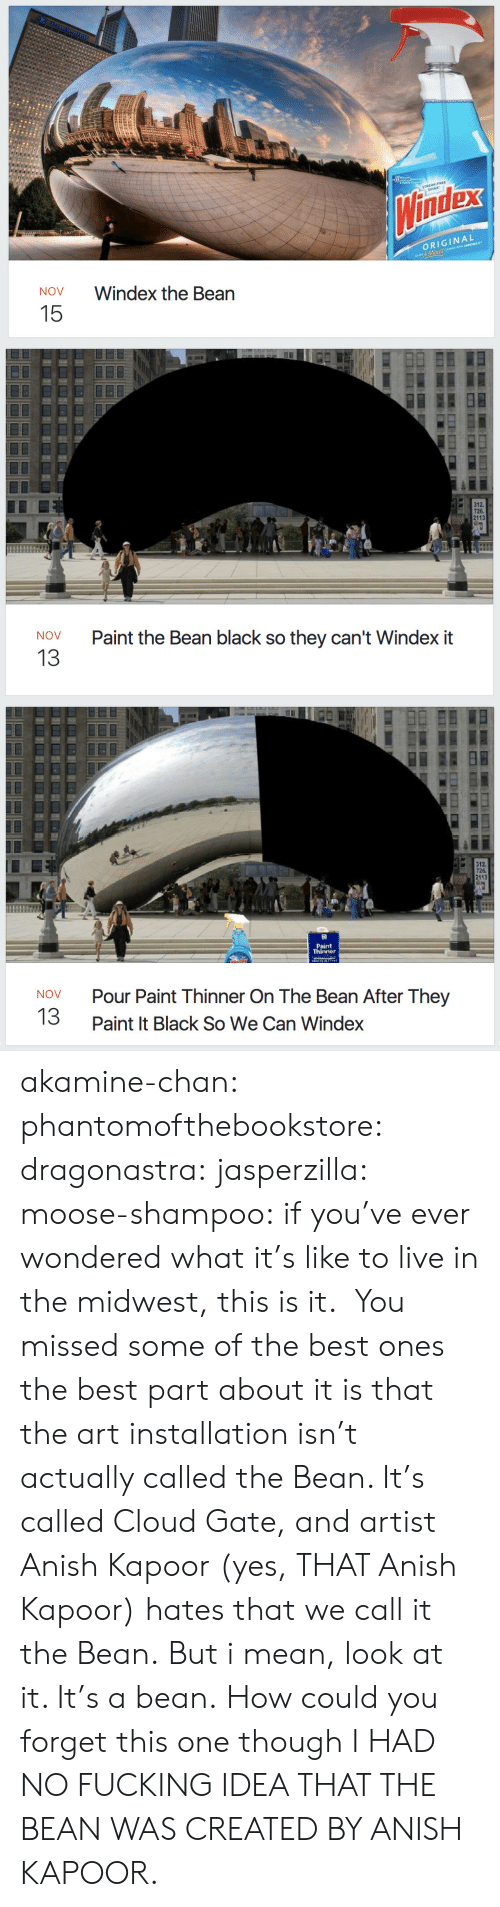 Fucking, Target, and Tumblr: dex  ORIGINAL  NOV  Windex the Bean  15   726.  2113  Paint the Bean black so they can't Windex it  NOV  13   726.  2113  Paint  Thinner  Pour Paint Thinner On The Bean After They  Paint It Black So We Can Windex  NOV  13 akamine-chan:  phantomofthebookstore:  dragonastra:  jasperzilla:  moose-shampoo: if you've ever wondered what it's like to live in the midwest, this is it.  You missed some of the best ones   the best part about it is that the art installation isn't actually called the Bean. It's called Cloud Gate, and artist Anish Kapoor (yes, THAT Anish Kapoor) hates that we call it the Bean. But i mean, look at it. It's a bean.   How could you forget this one though   I HAD NO FUCKING IDEA THAT THE BEAN WAS CREATED BY ANISH KAPOOR.